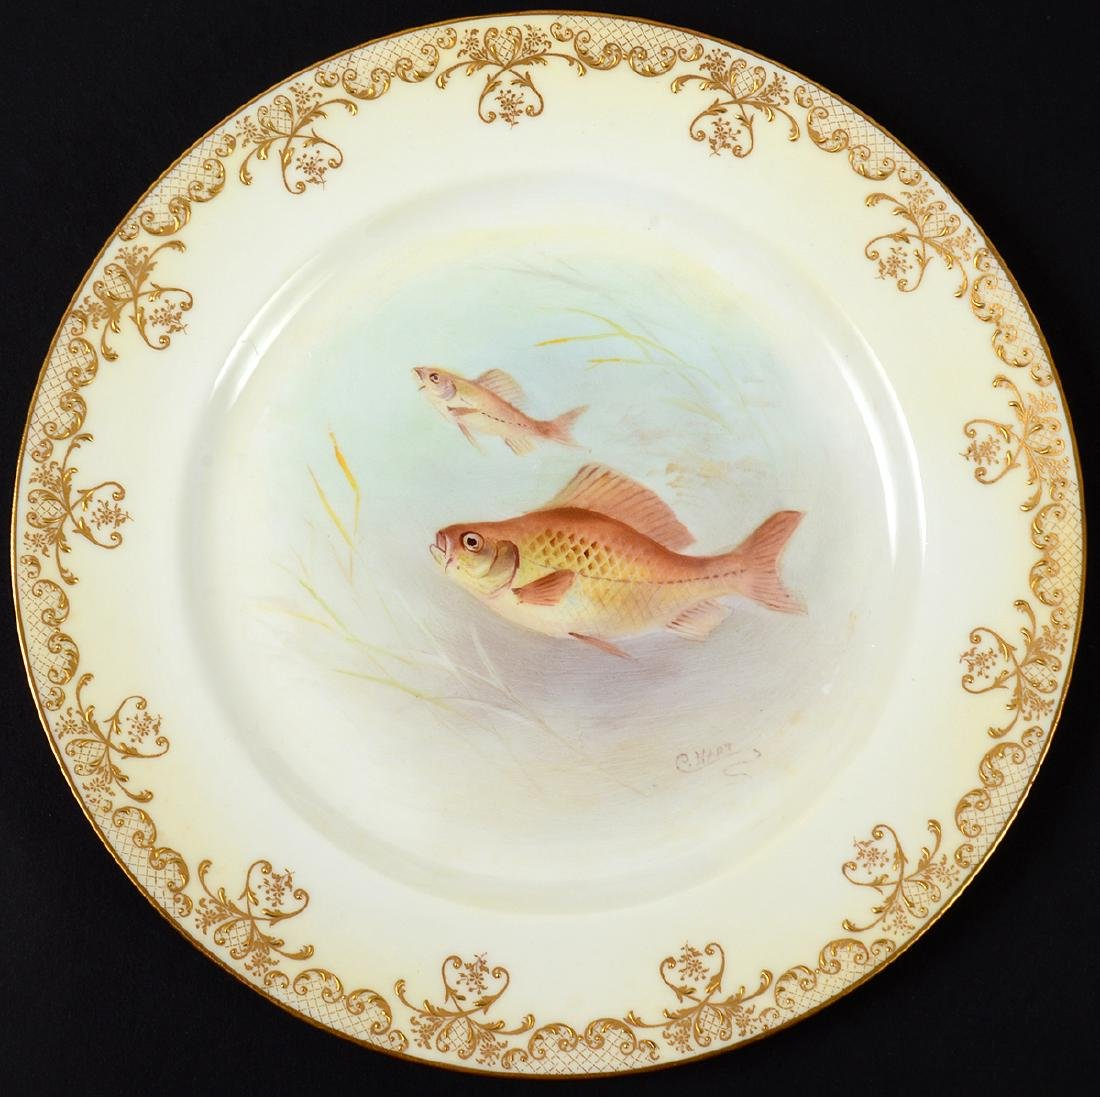 SET OF TEN ROYAL DOULTON PORCELAIN FISH PLATES - 4